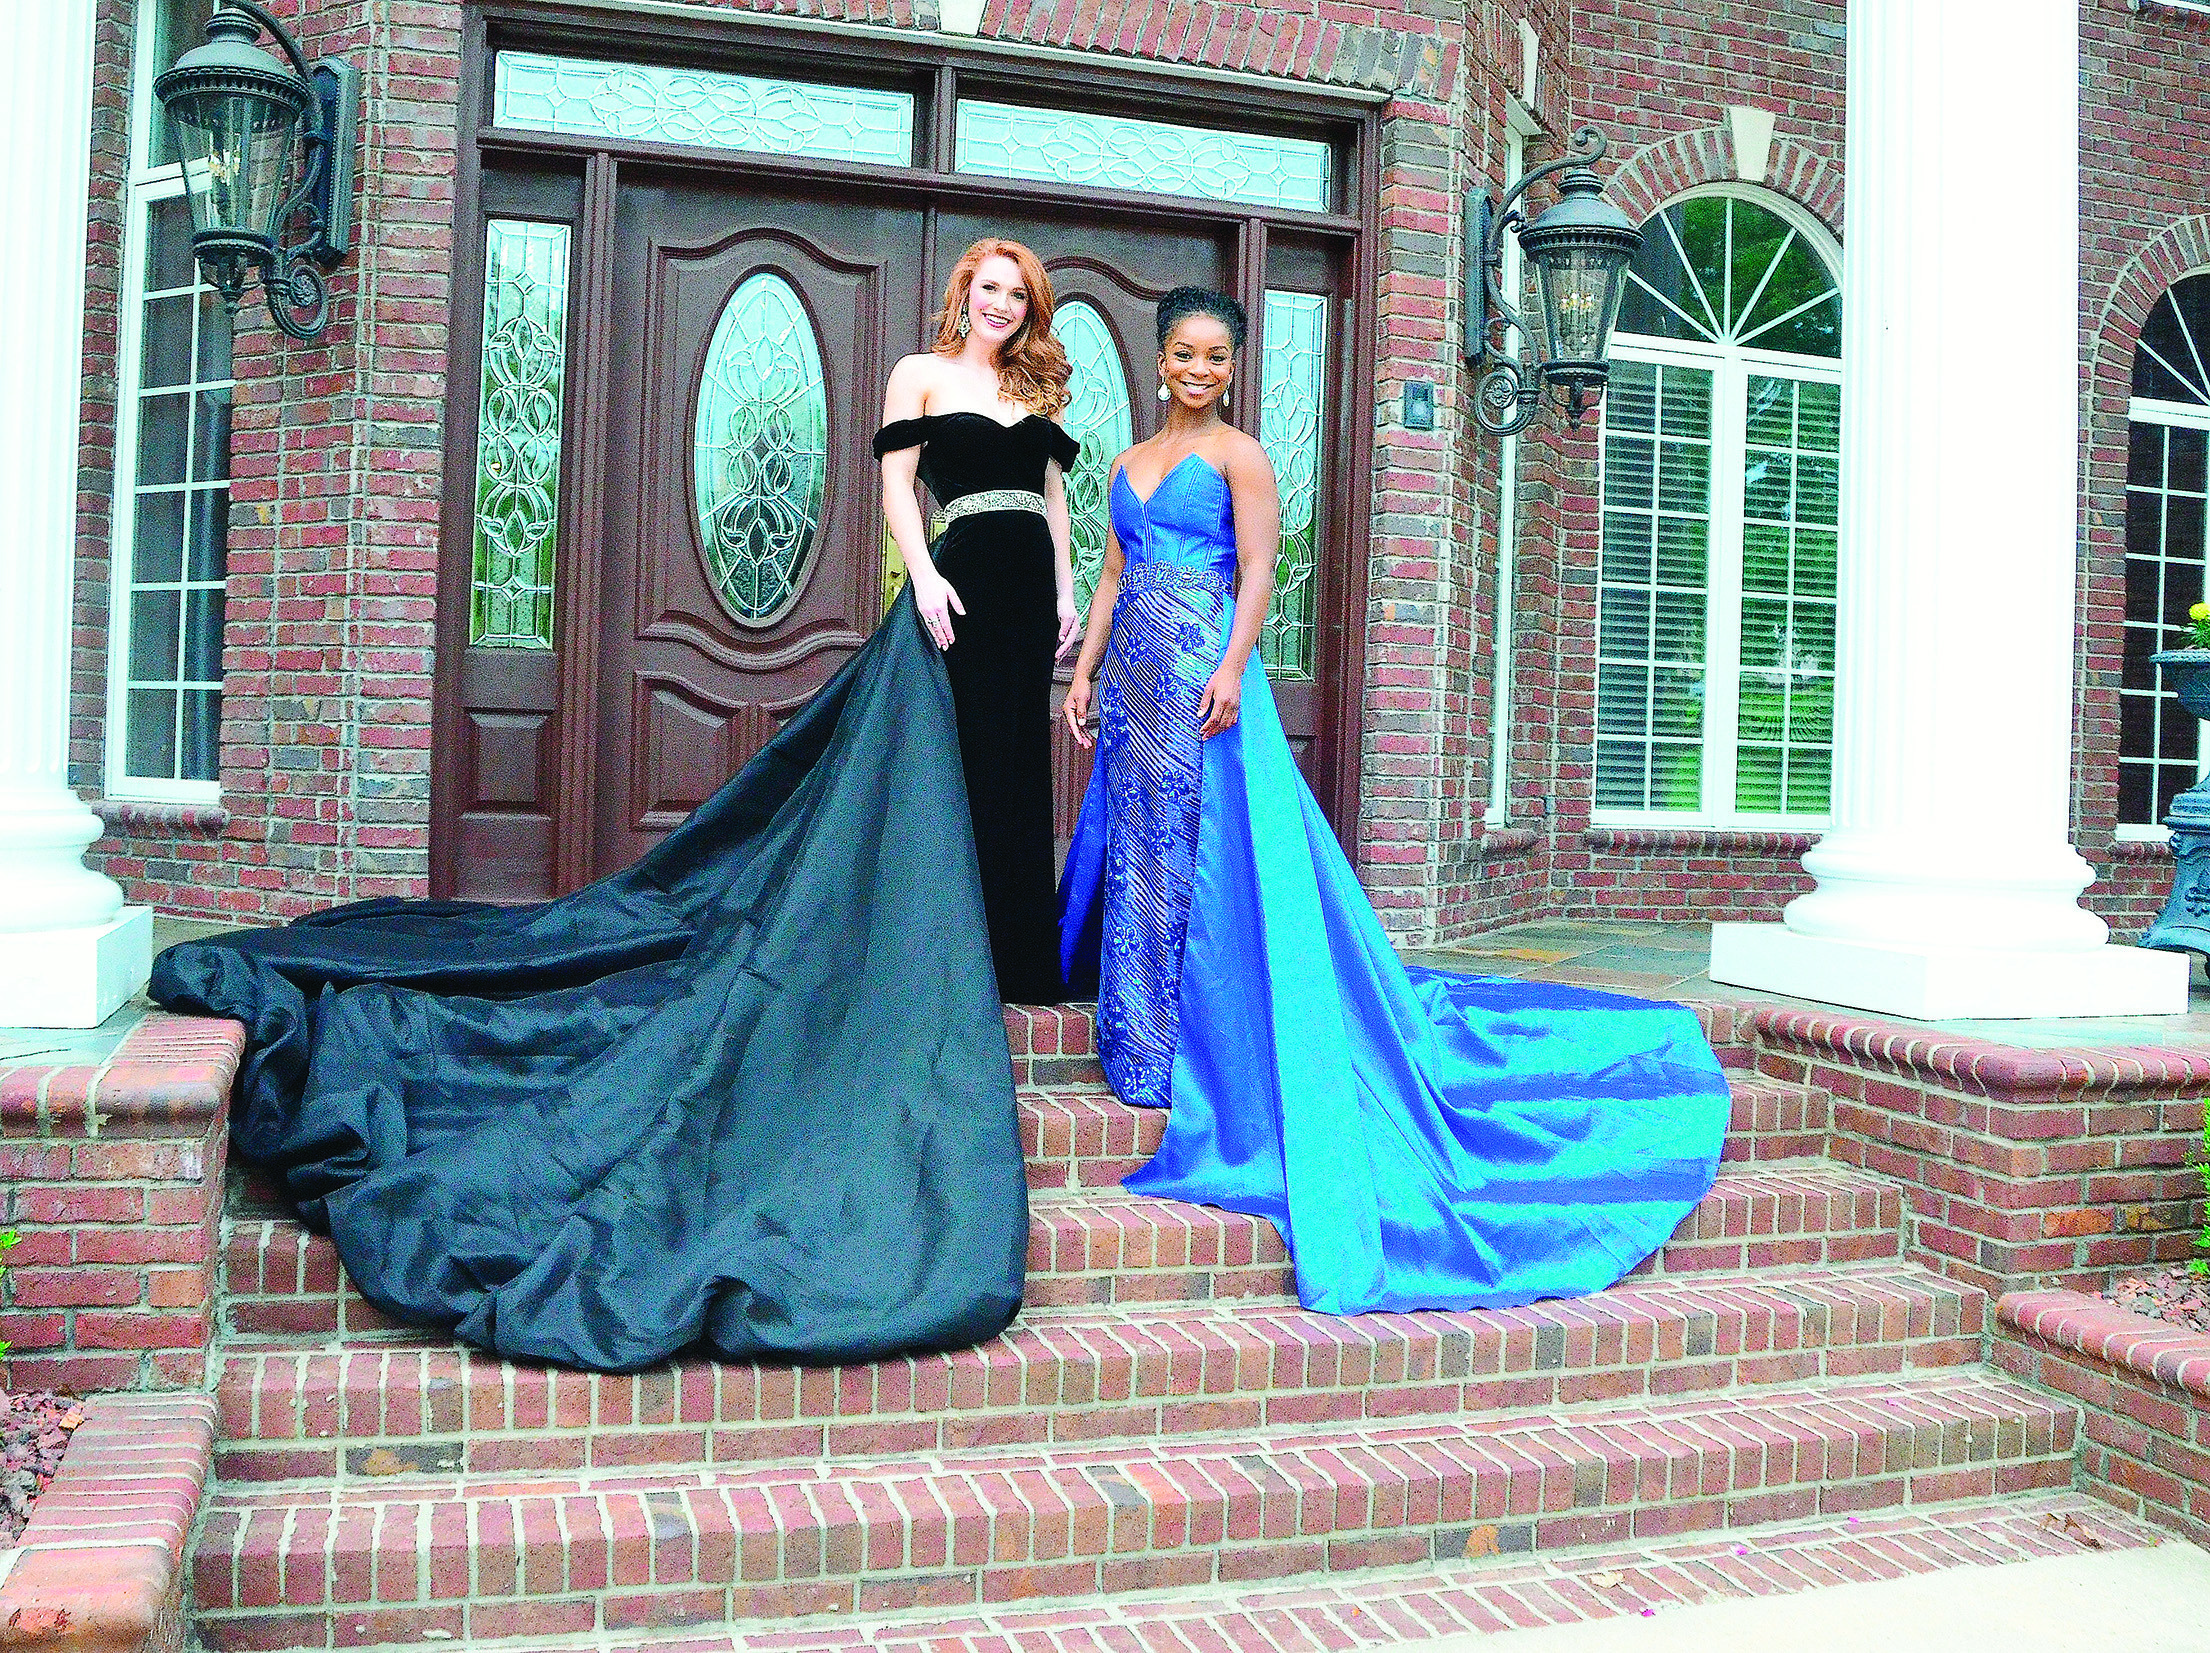 Miss Walker County Chassidy Sumler, at right, and Miss Heart of Dixie Reagan Handley, at left, leave today to begin competing in this year's Miss Alabama Pageant at Samford University in Homewood. Here are a few of the things they will wear during the competition. For more photos, see B4 of today's Eagle.